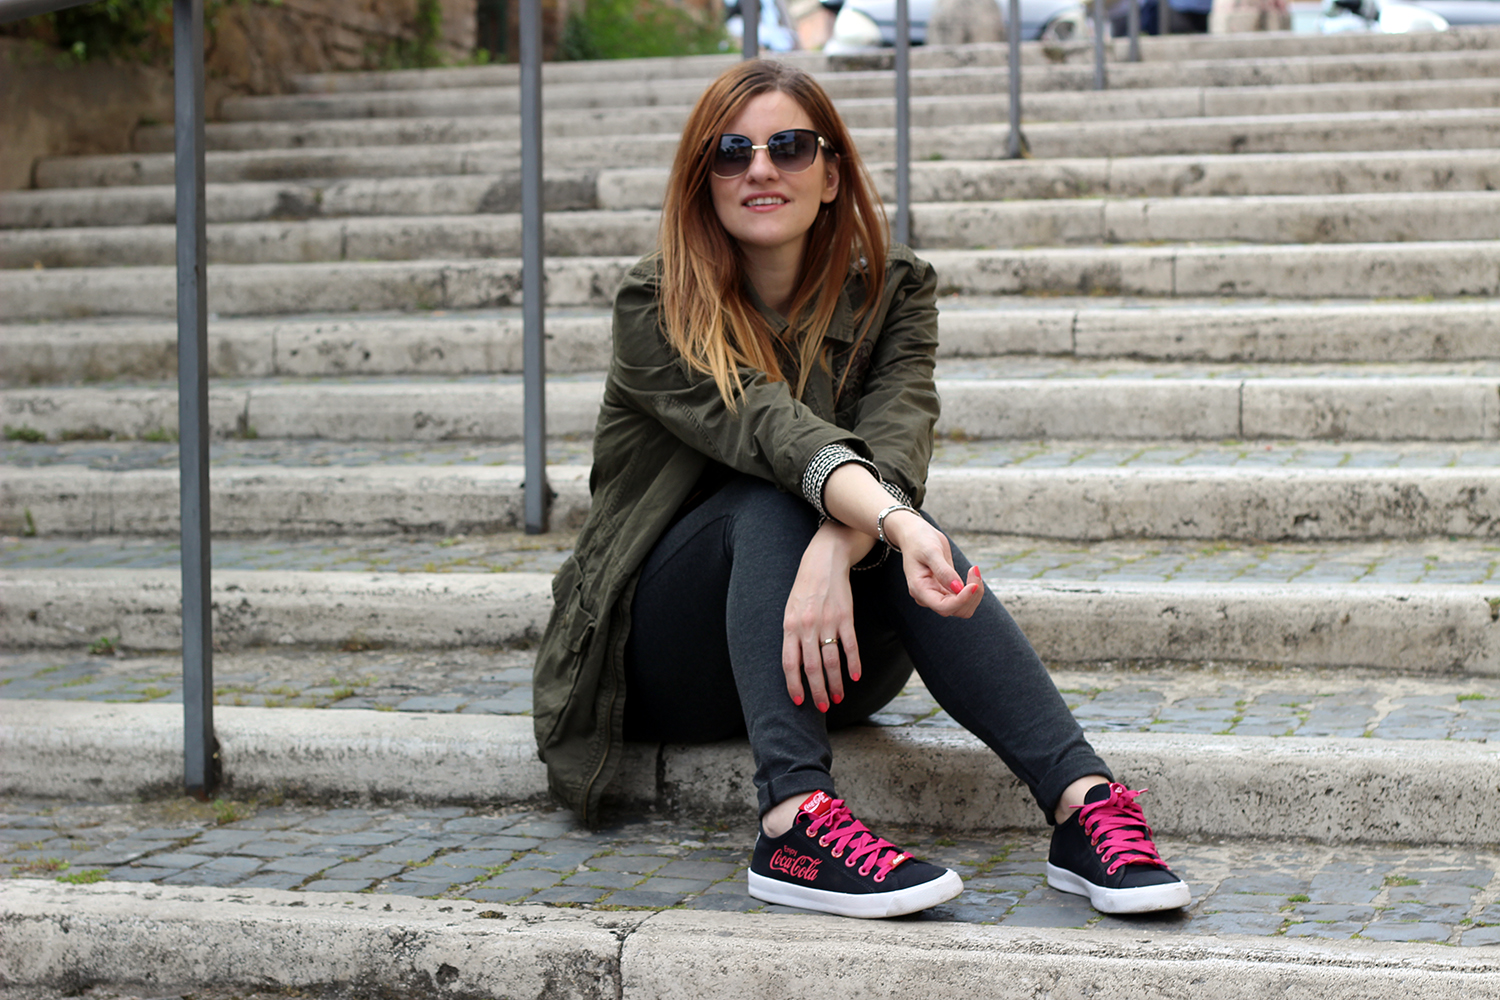 ELISABETTA BERTOLINI FASHION BLOGGER CHE SORRIDONO OUTFIT COCACOLA SHOES